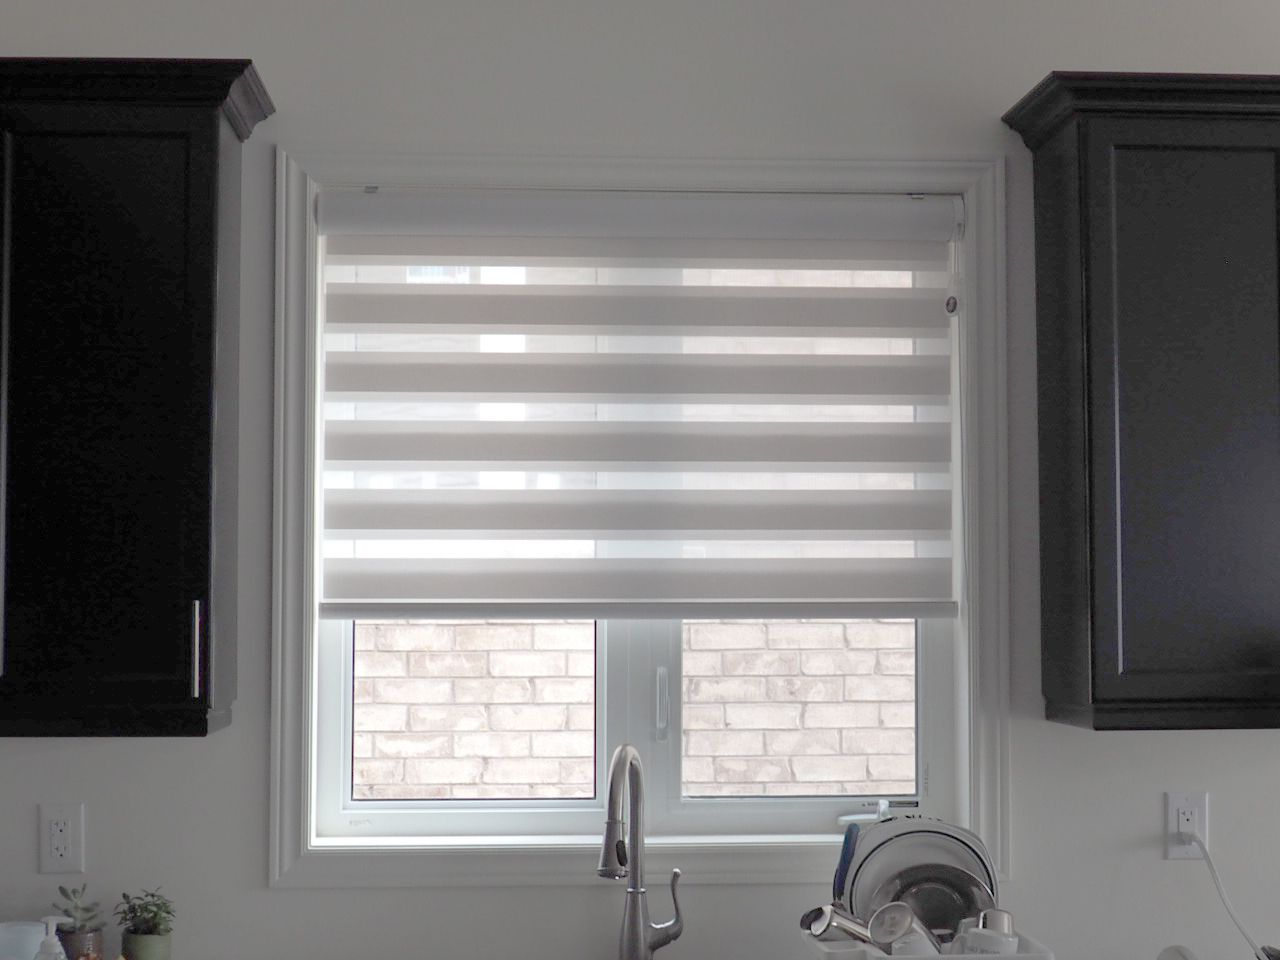 Combi Blinds On Kitchen Over The Sink Kitchen Window Curtains Kitchen Window Coverings Kitchen Window Blinds